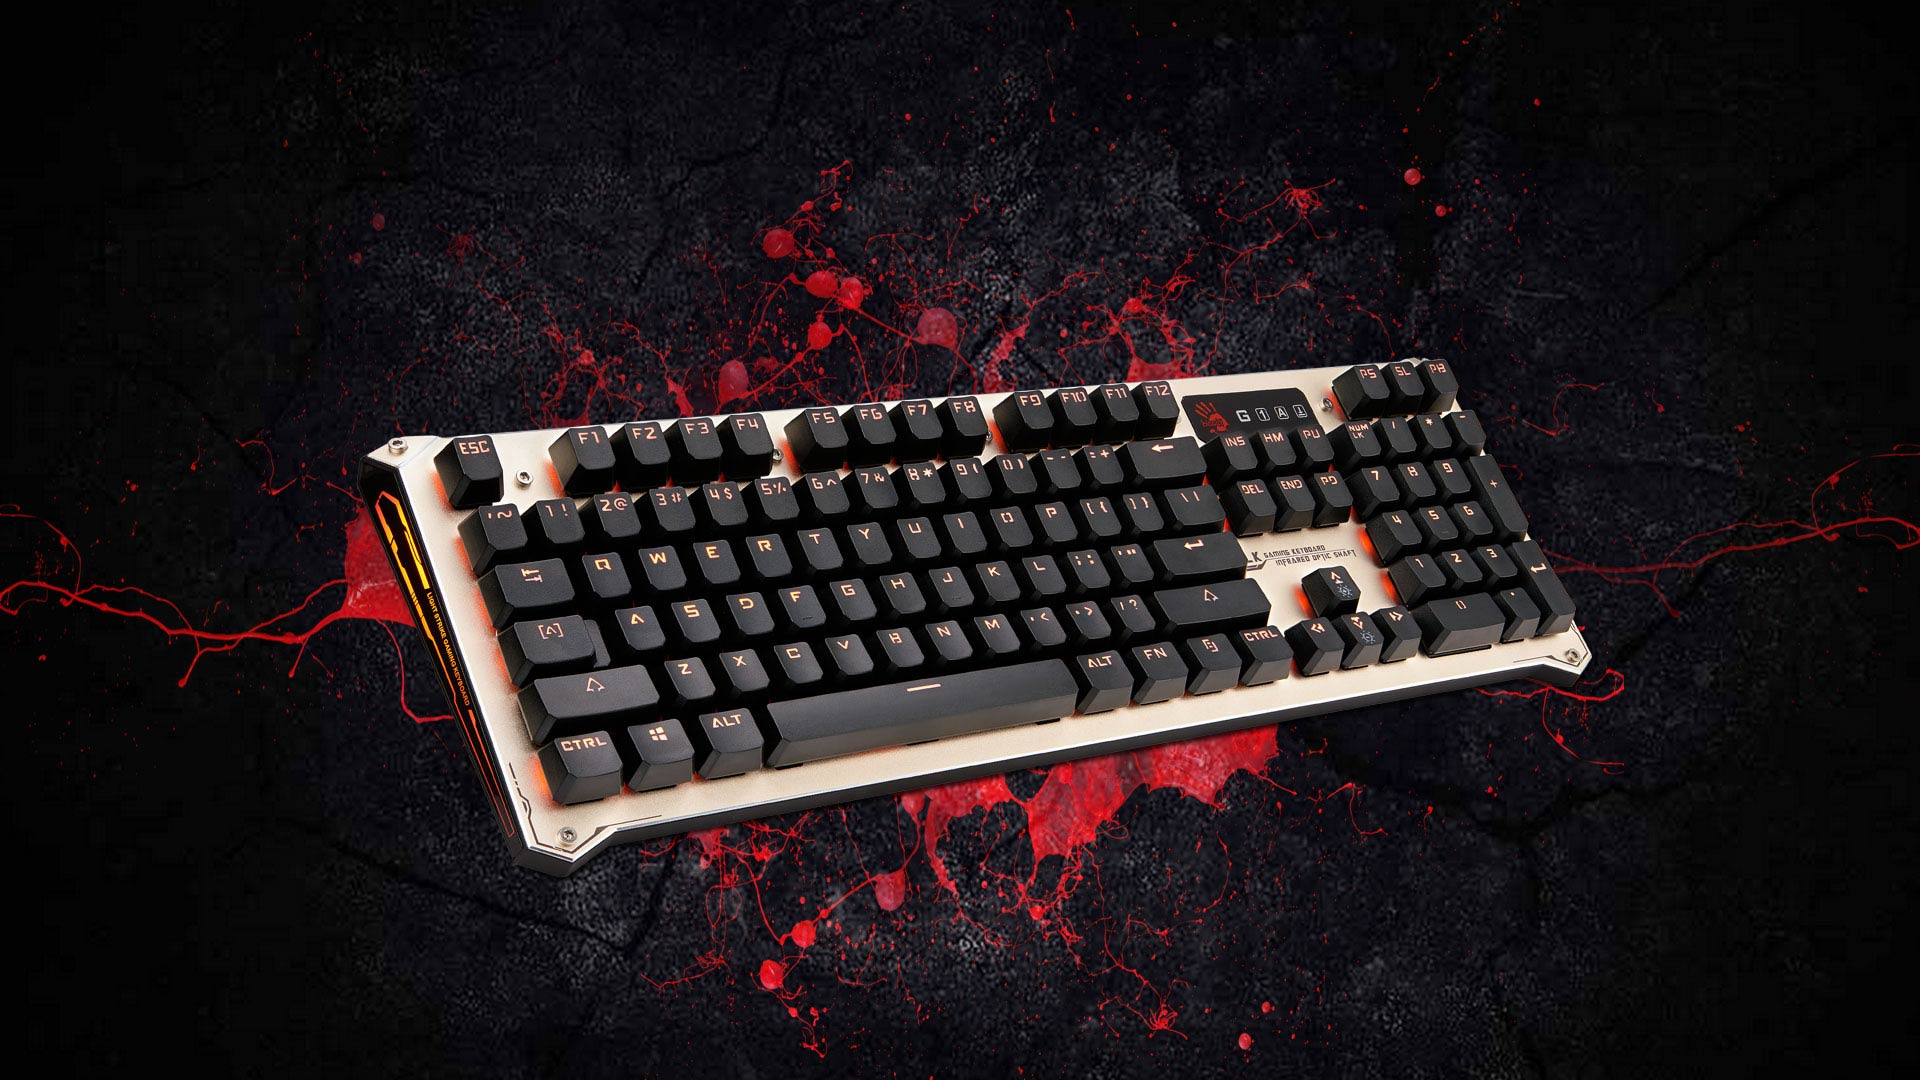 Bloody B840 Full Light Strike Mechanical Gaming Keyboard Corsair K66 Cherry Mx Red Black Color Worlds First Lightning Speed Switch Innovative Lk Optical Technology Uses Detection That Removes All Input Lag Which Is Able To